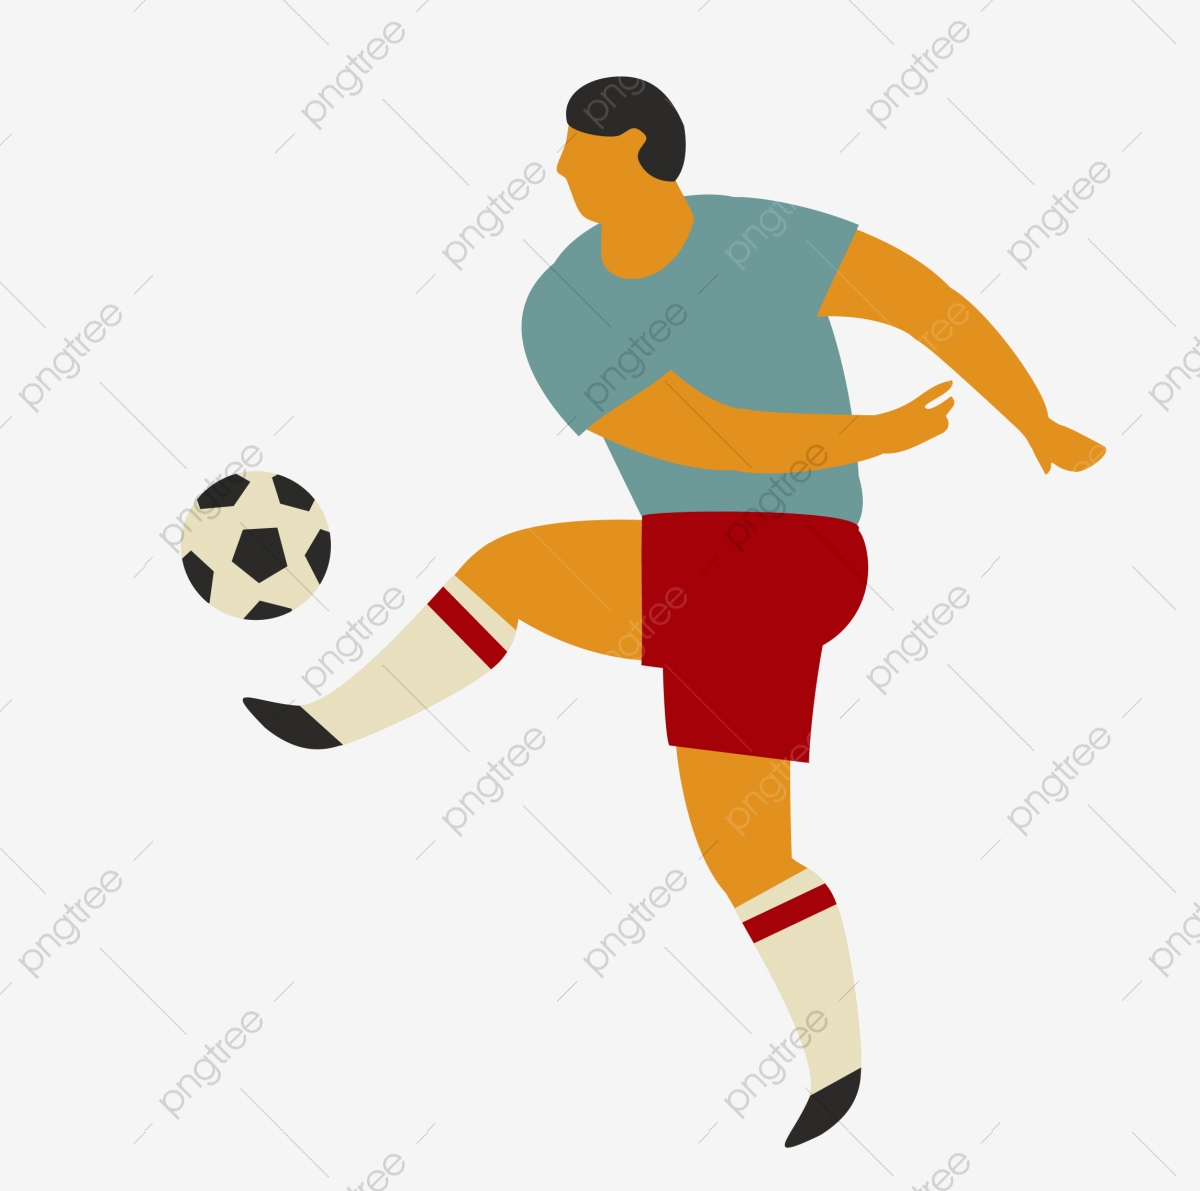 hight resolution of commercial use resource upgrade to premium plan and get license authorization upgradenow football player